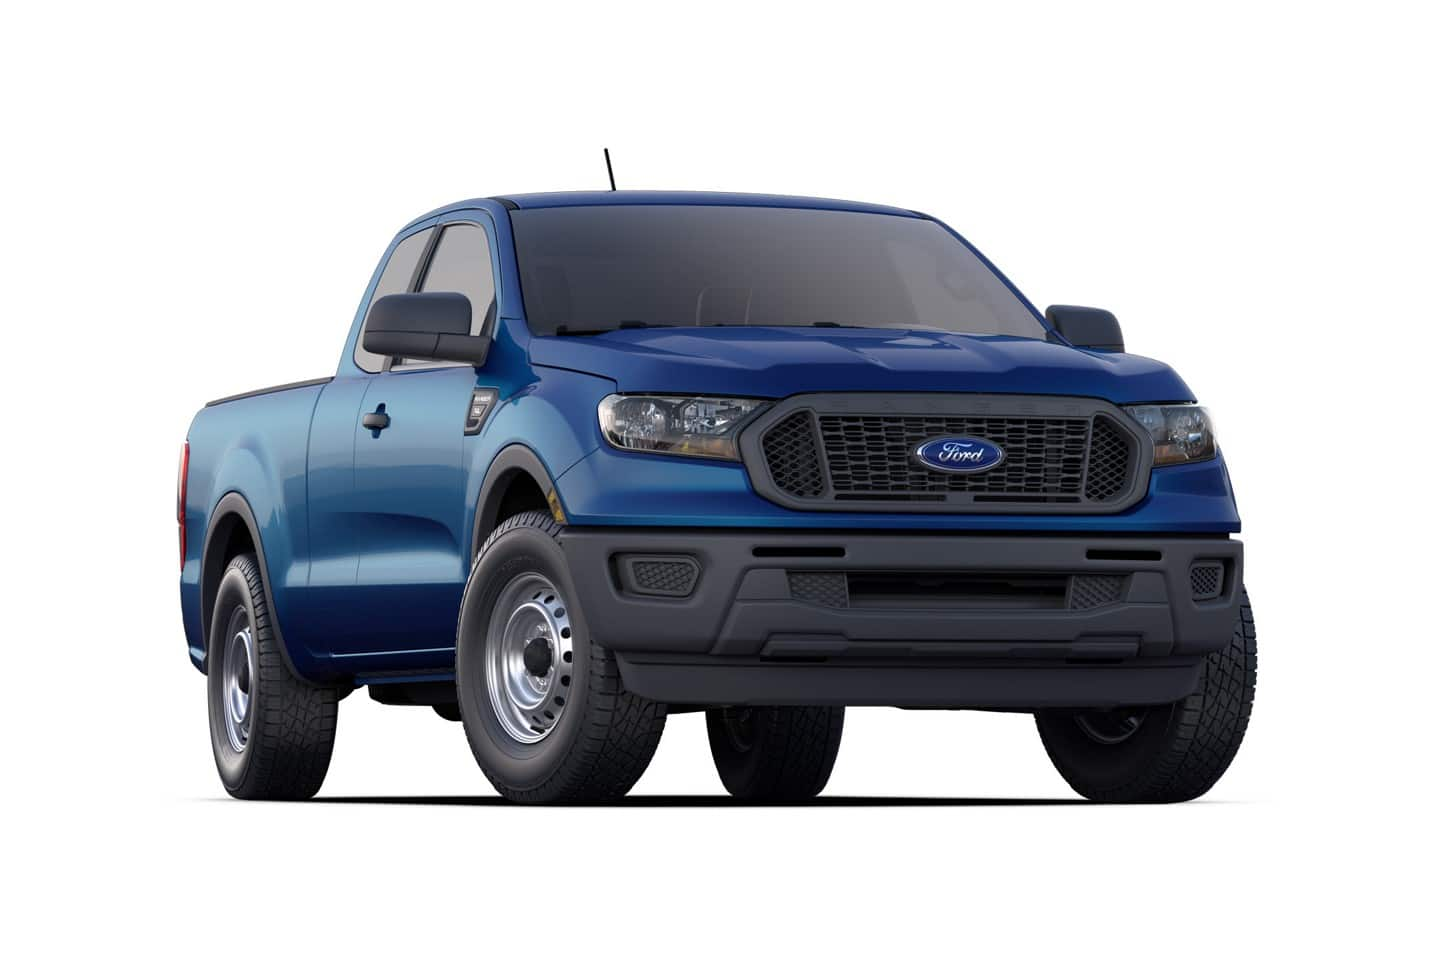 40 Best 2019 Ford Ranger 2 Door Rumors